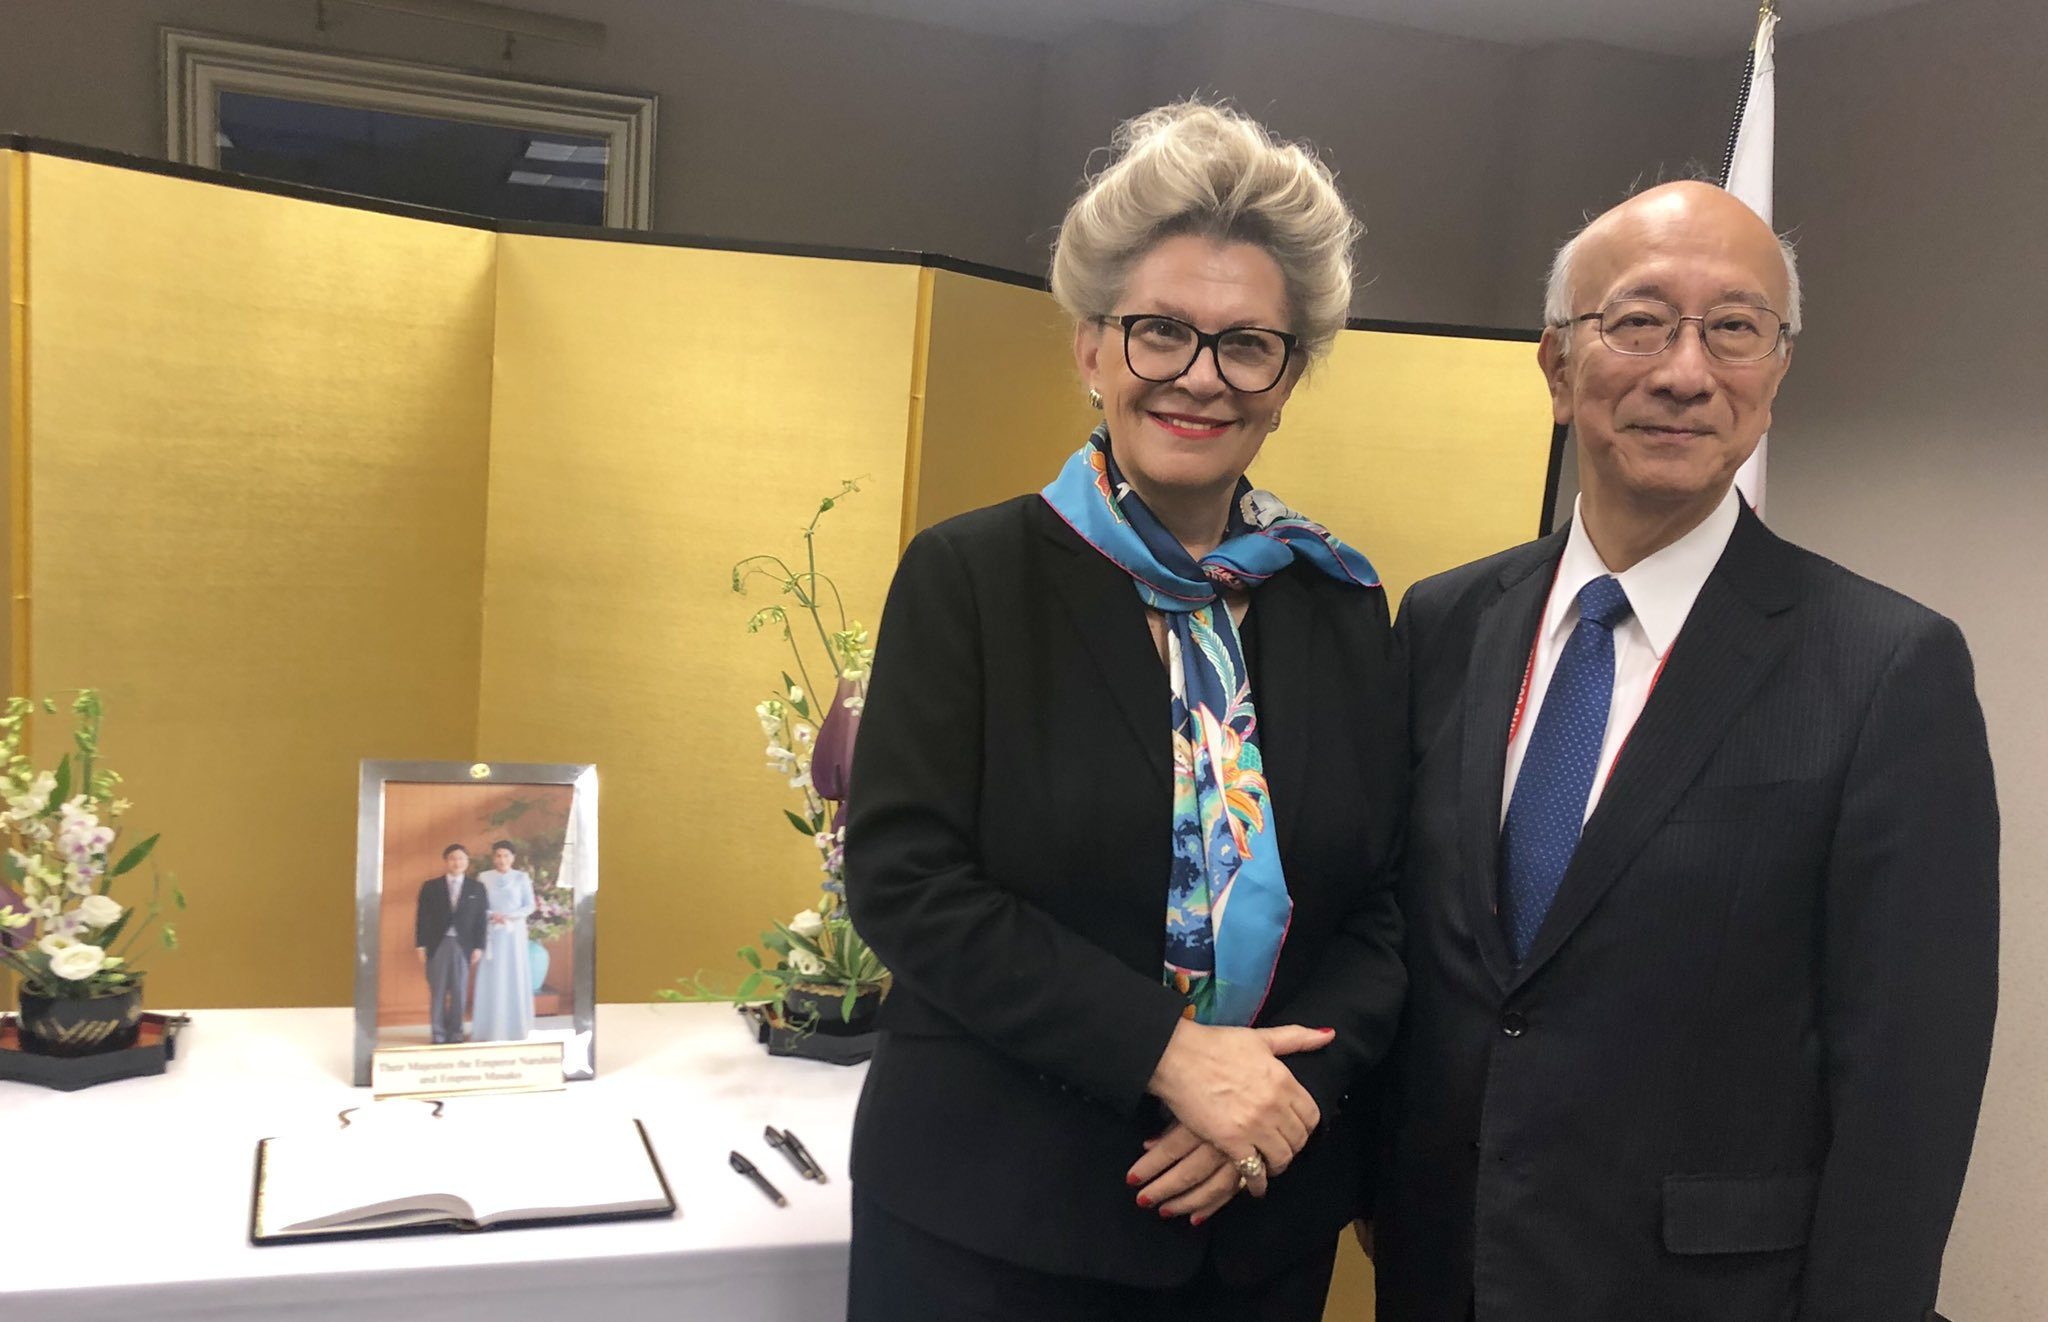 "UN Ambassador of Hungary, Presidentof International Association of Permanent Representatives (IAPR), FRSA,FWAAS, diplomat, television broadcaster, writer published on her Twitter page ""Congratulated PR of @JapanMissionUN Amb. Bessho Kōrō for the enthronement of the new Japanese emperor&conveyed our good wishes to Their Majesties Emperor Naruhito& Empress Masako. Naruhito's ascension signals the start of the ""Reiwa"" (beautiful harmony) era."